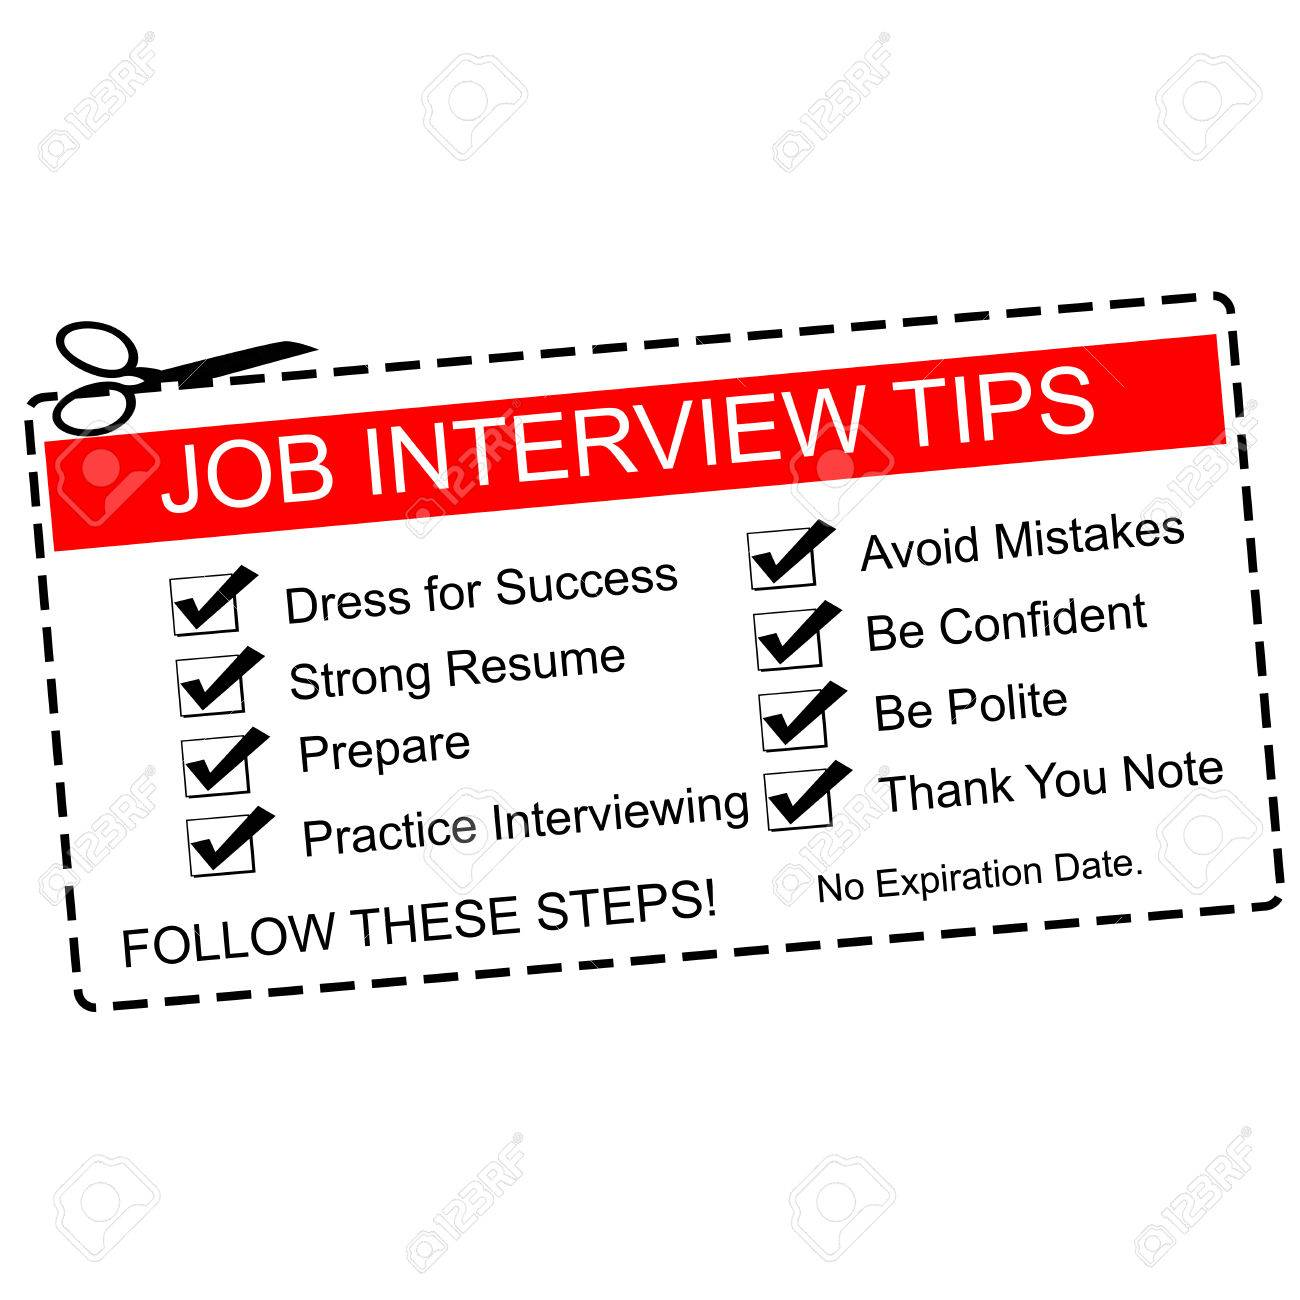 a red and white job interview tips coupon great terms such a red and white job interview tips coupon great terms such as dress for success